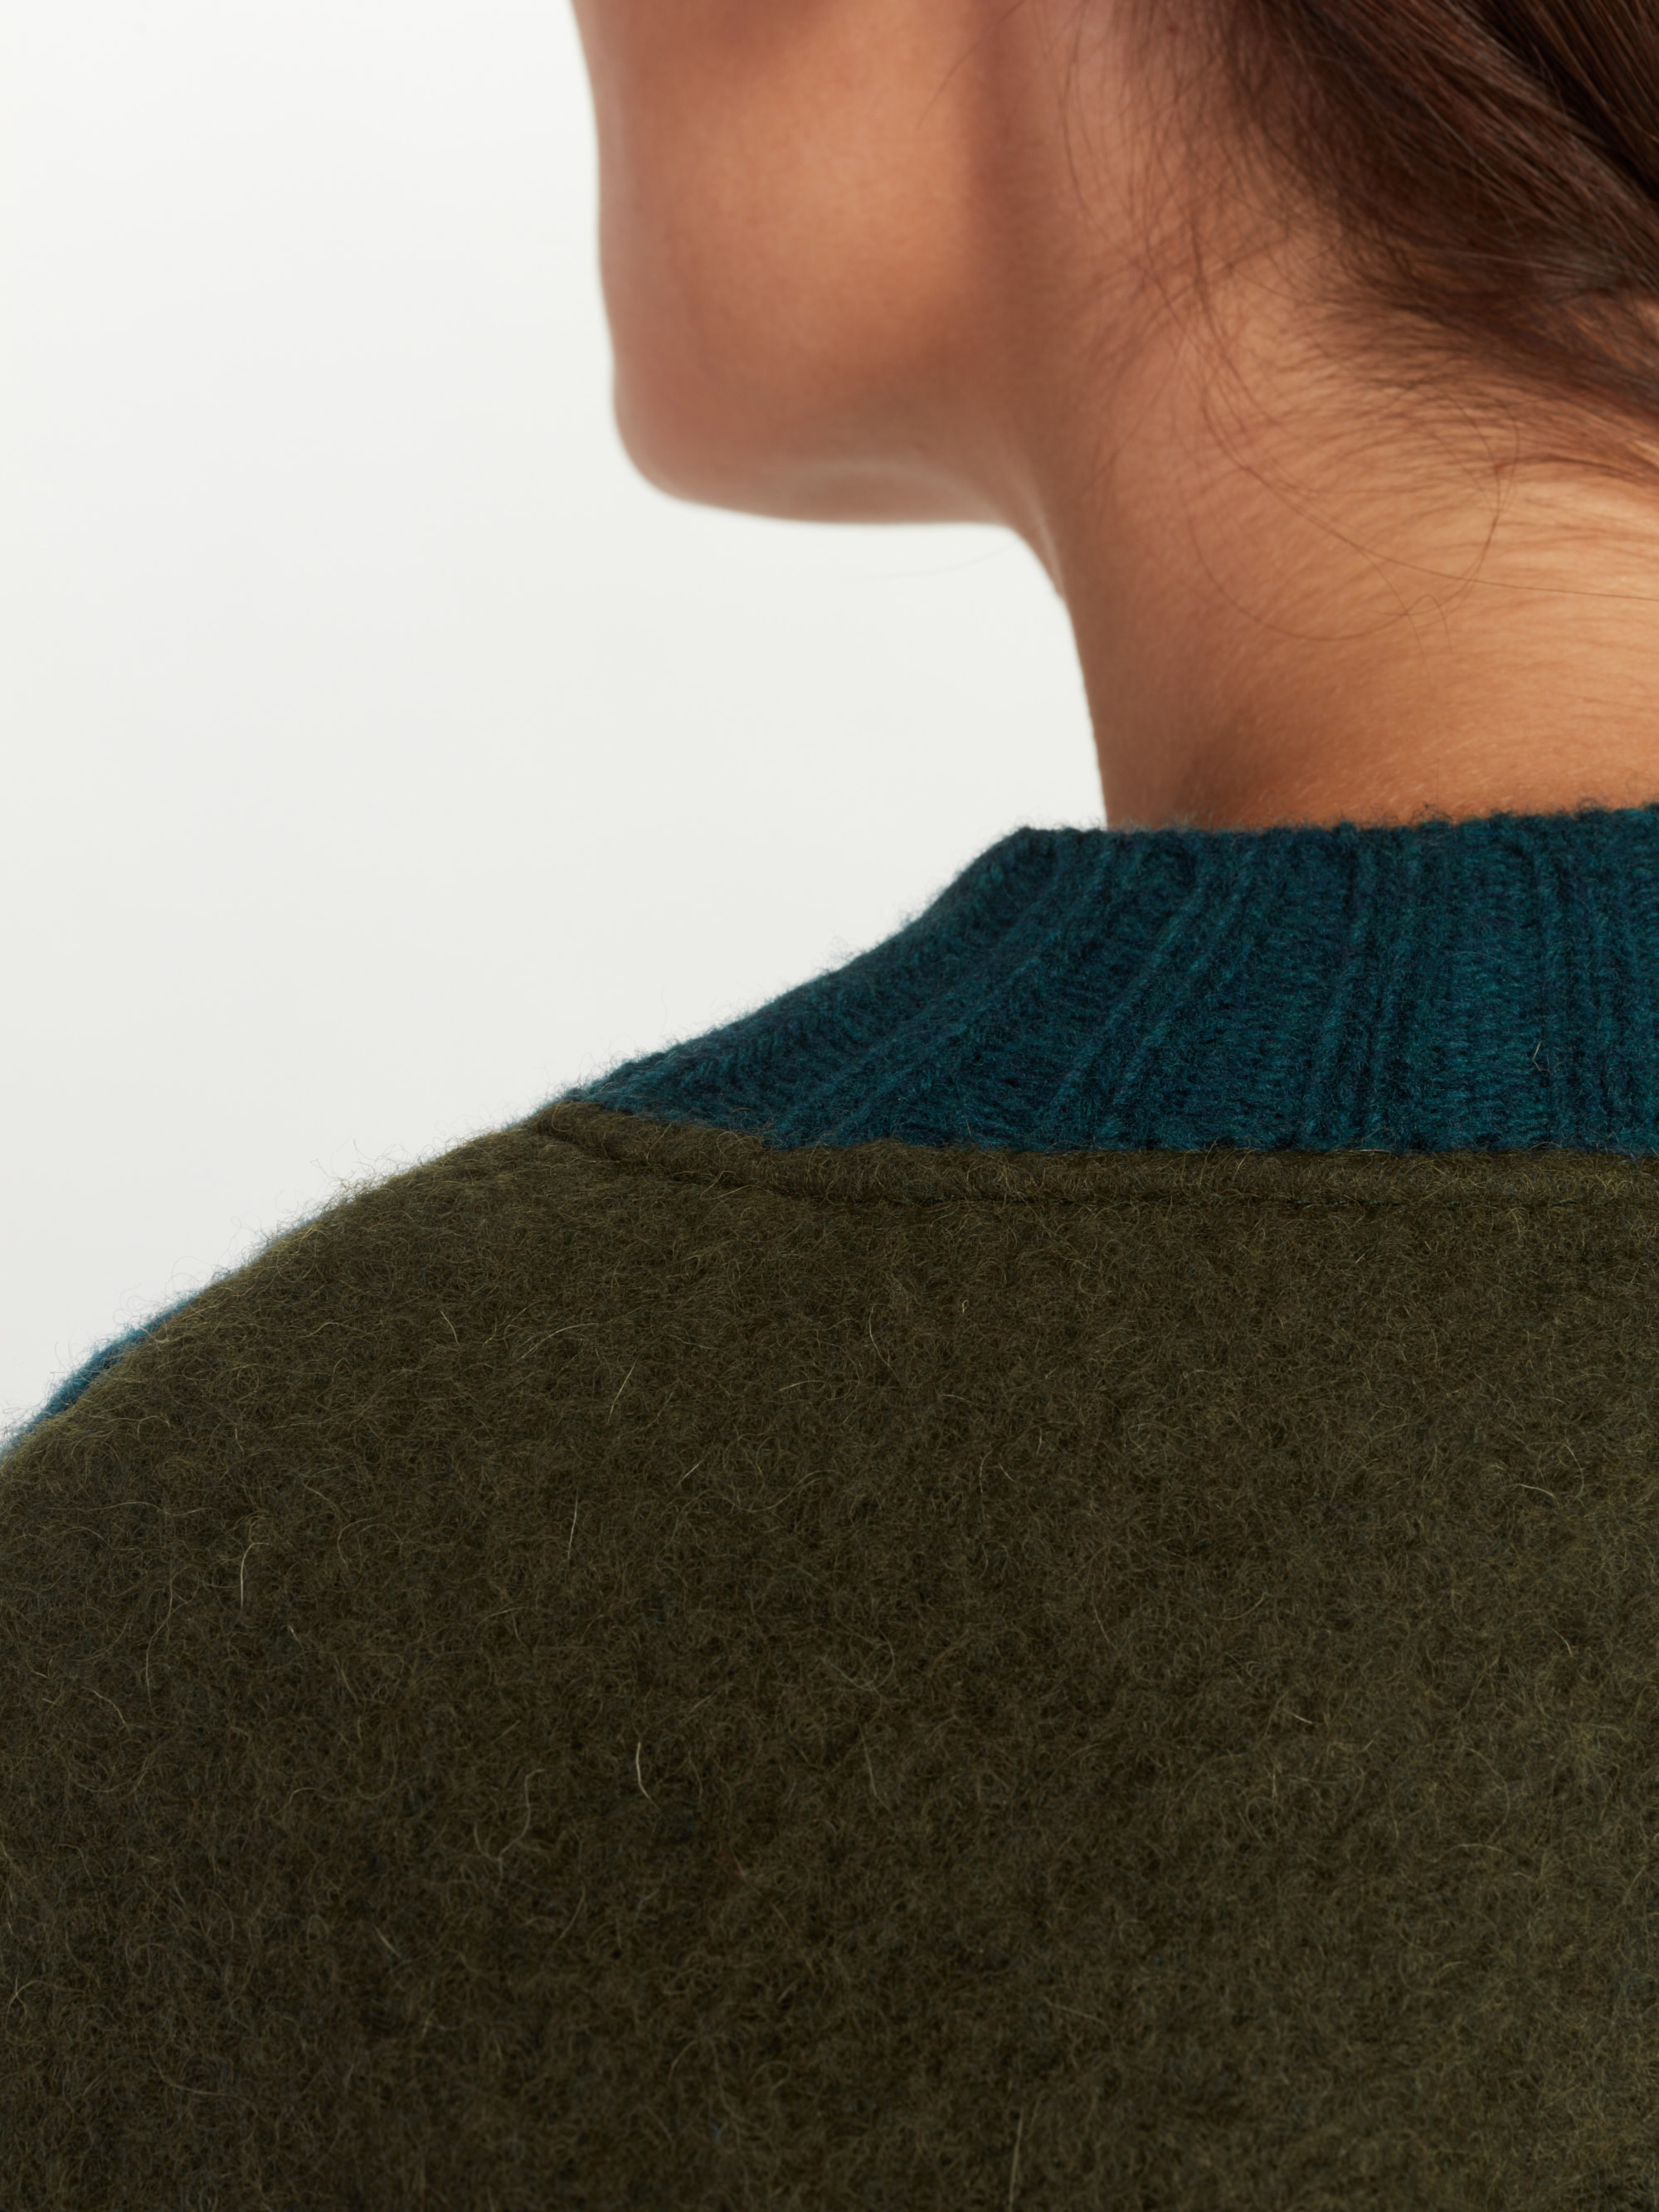 jt_sweater-carl_32-03-2019__picture-3312